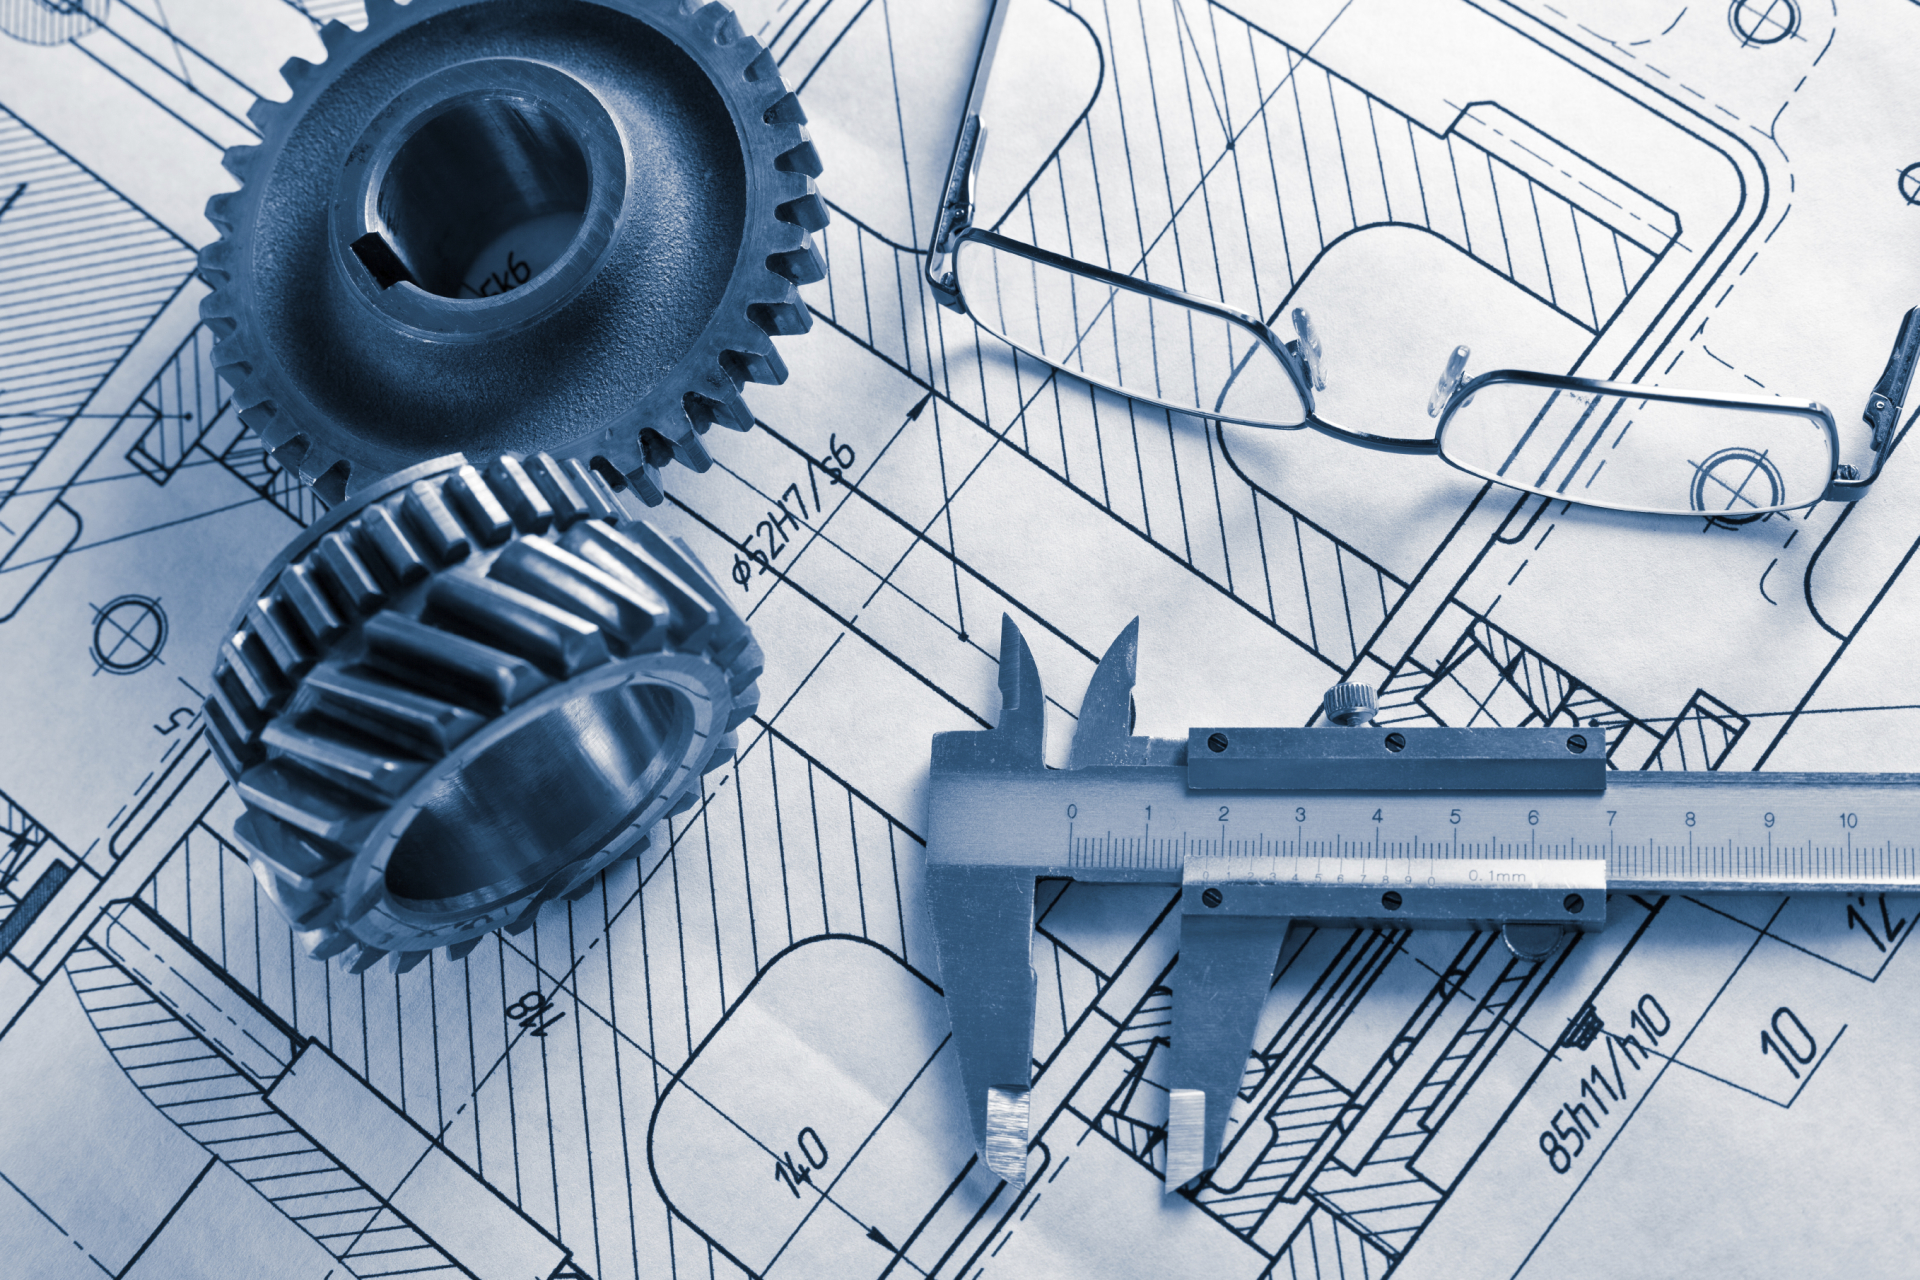 B.Eng in Product Design and Manufacturing Engineering